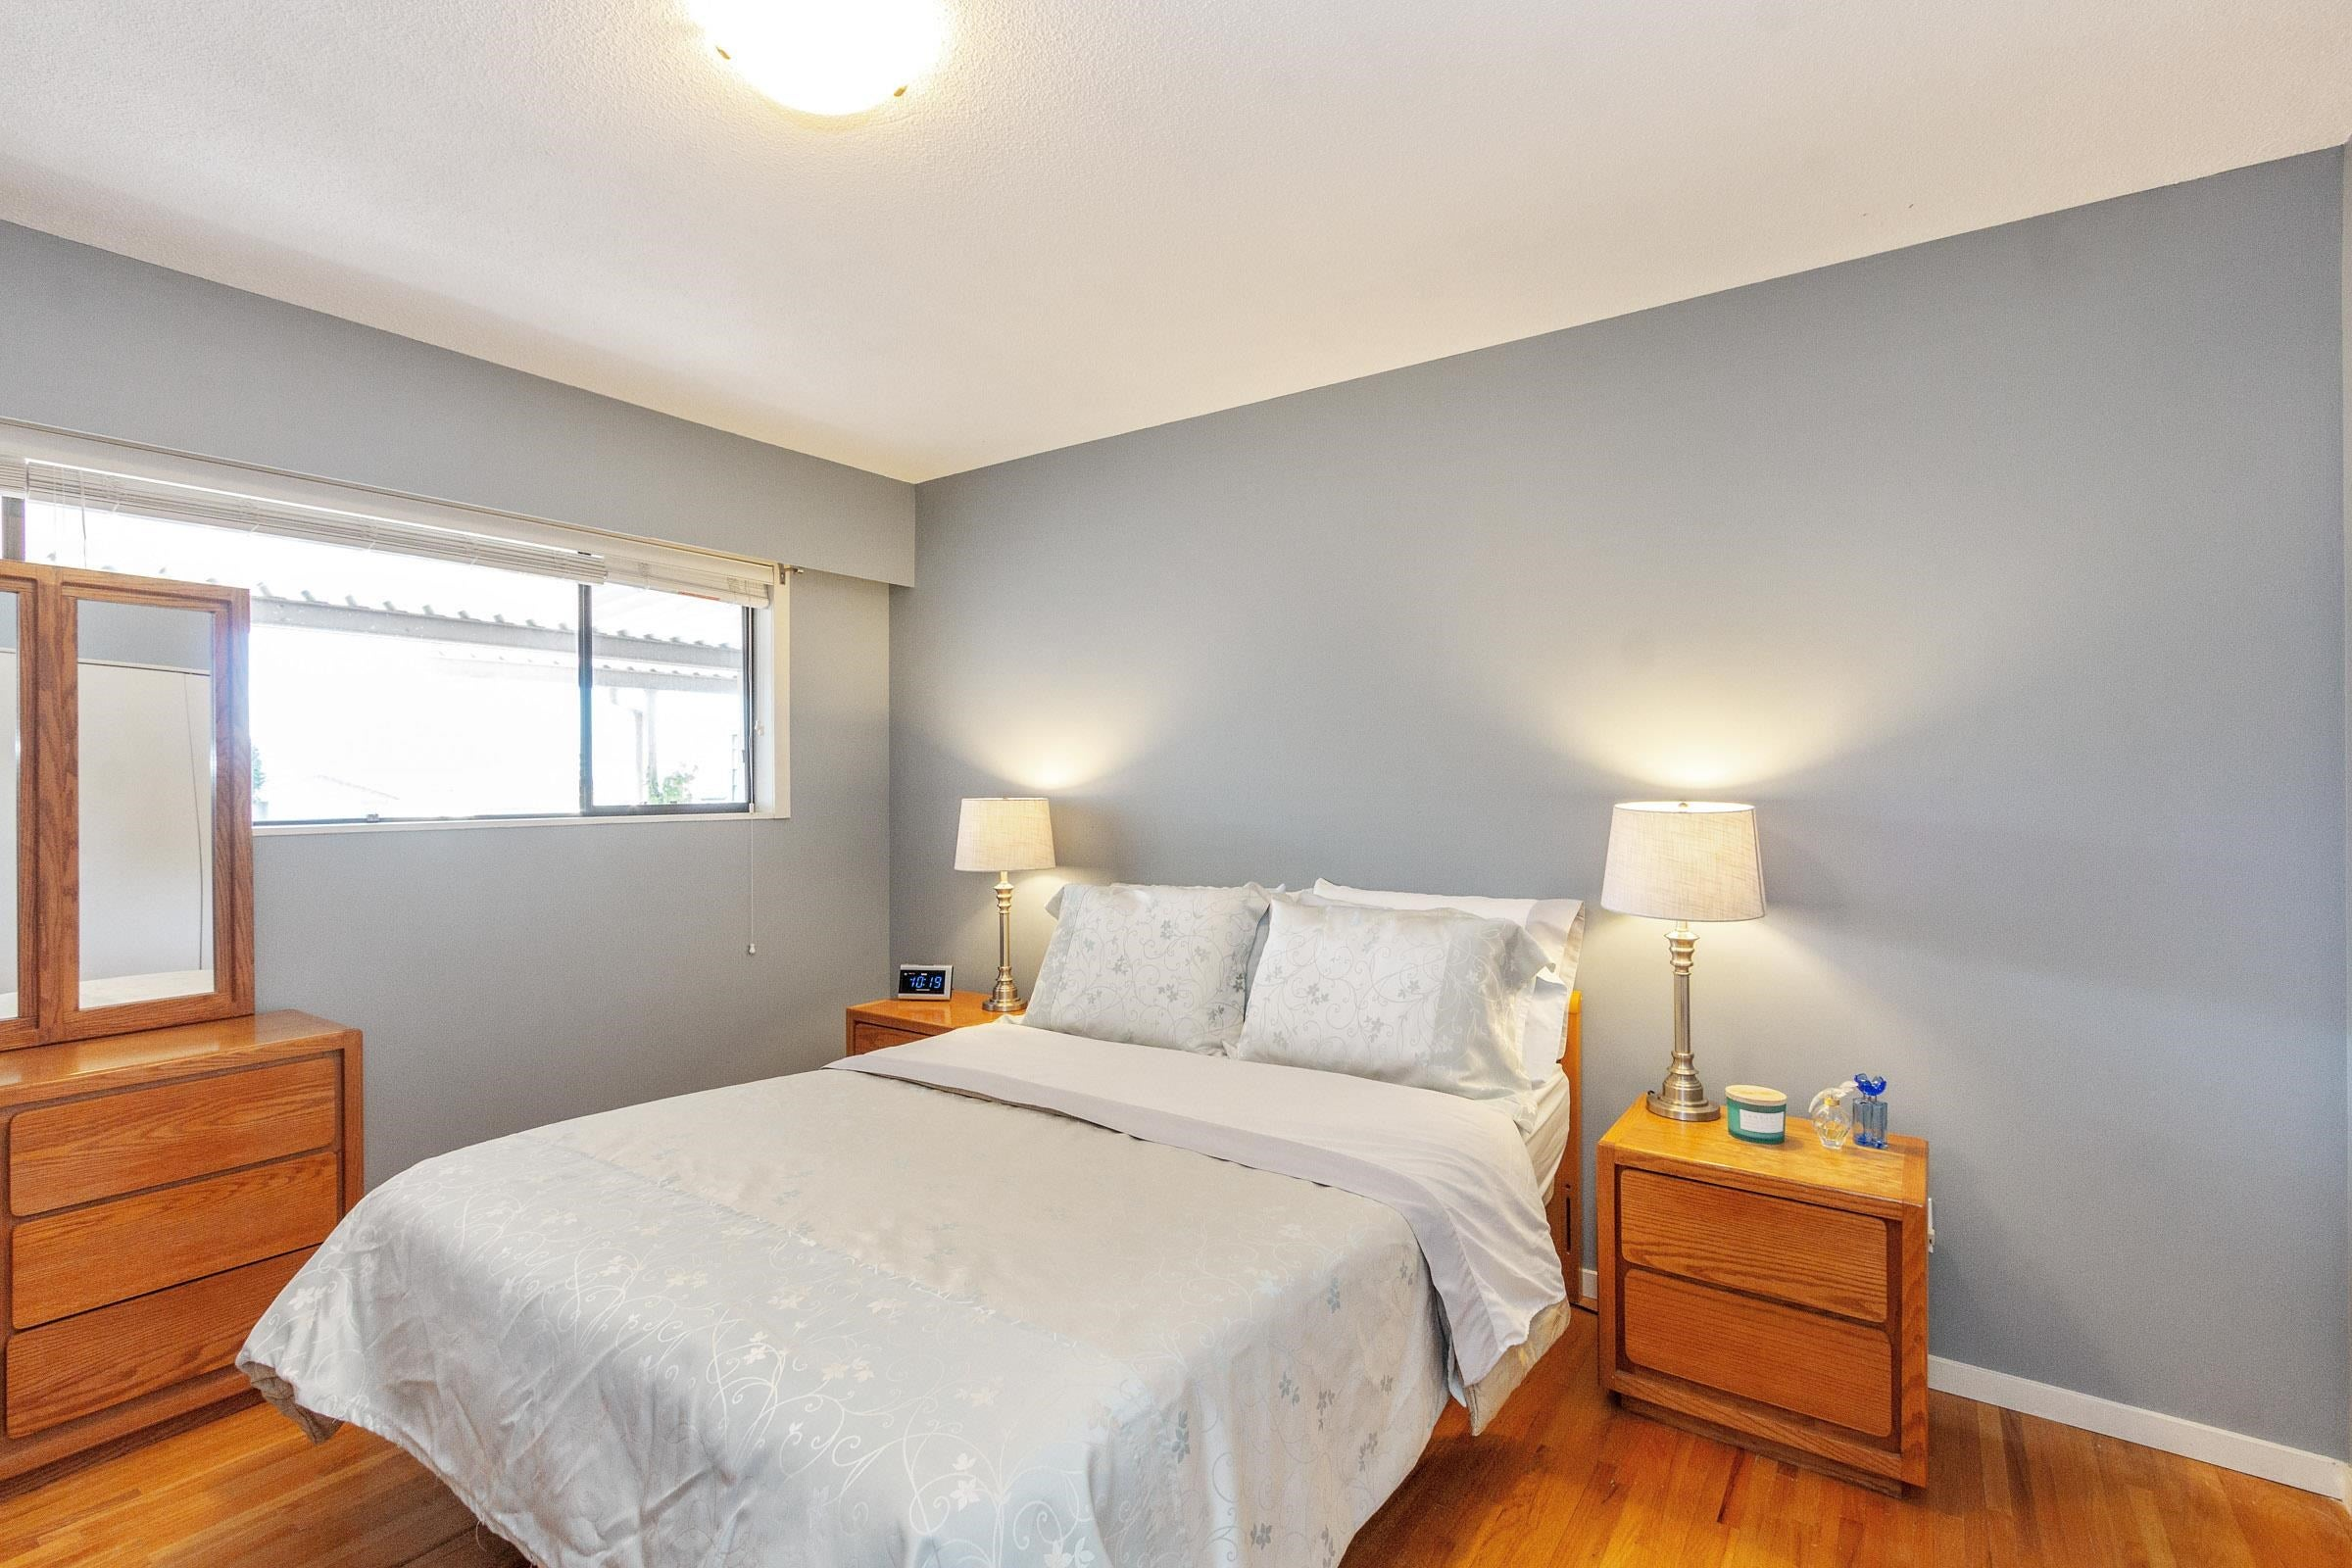 117 W ST. JAMES ROAD - Upper Lonsdale House/Single Family for sale, 5 Bedrooms (R2614107) - #12